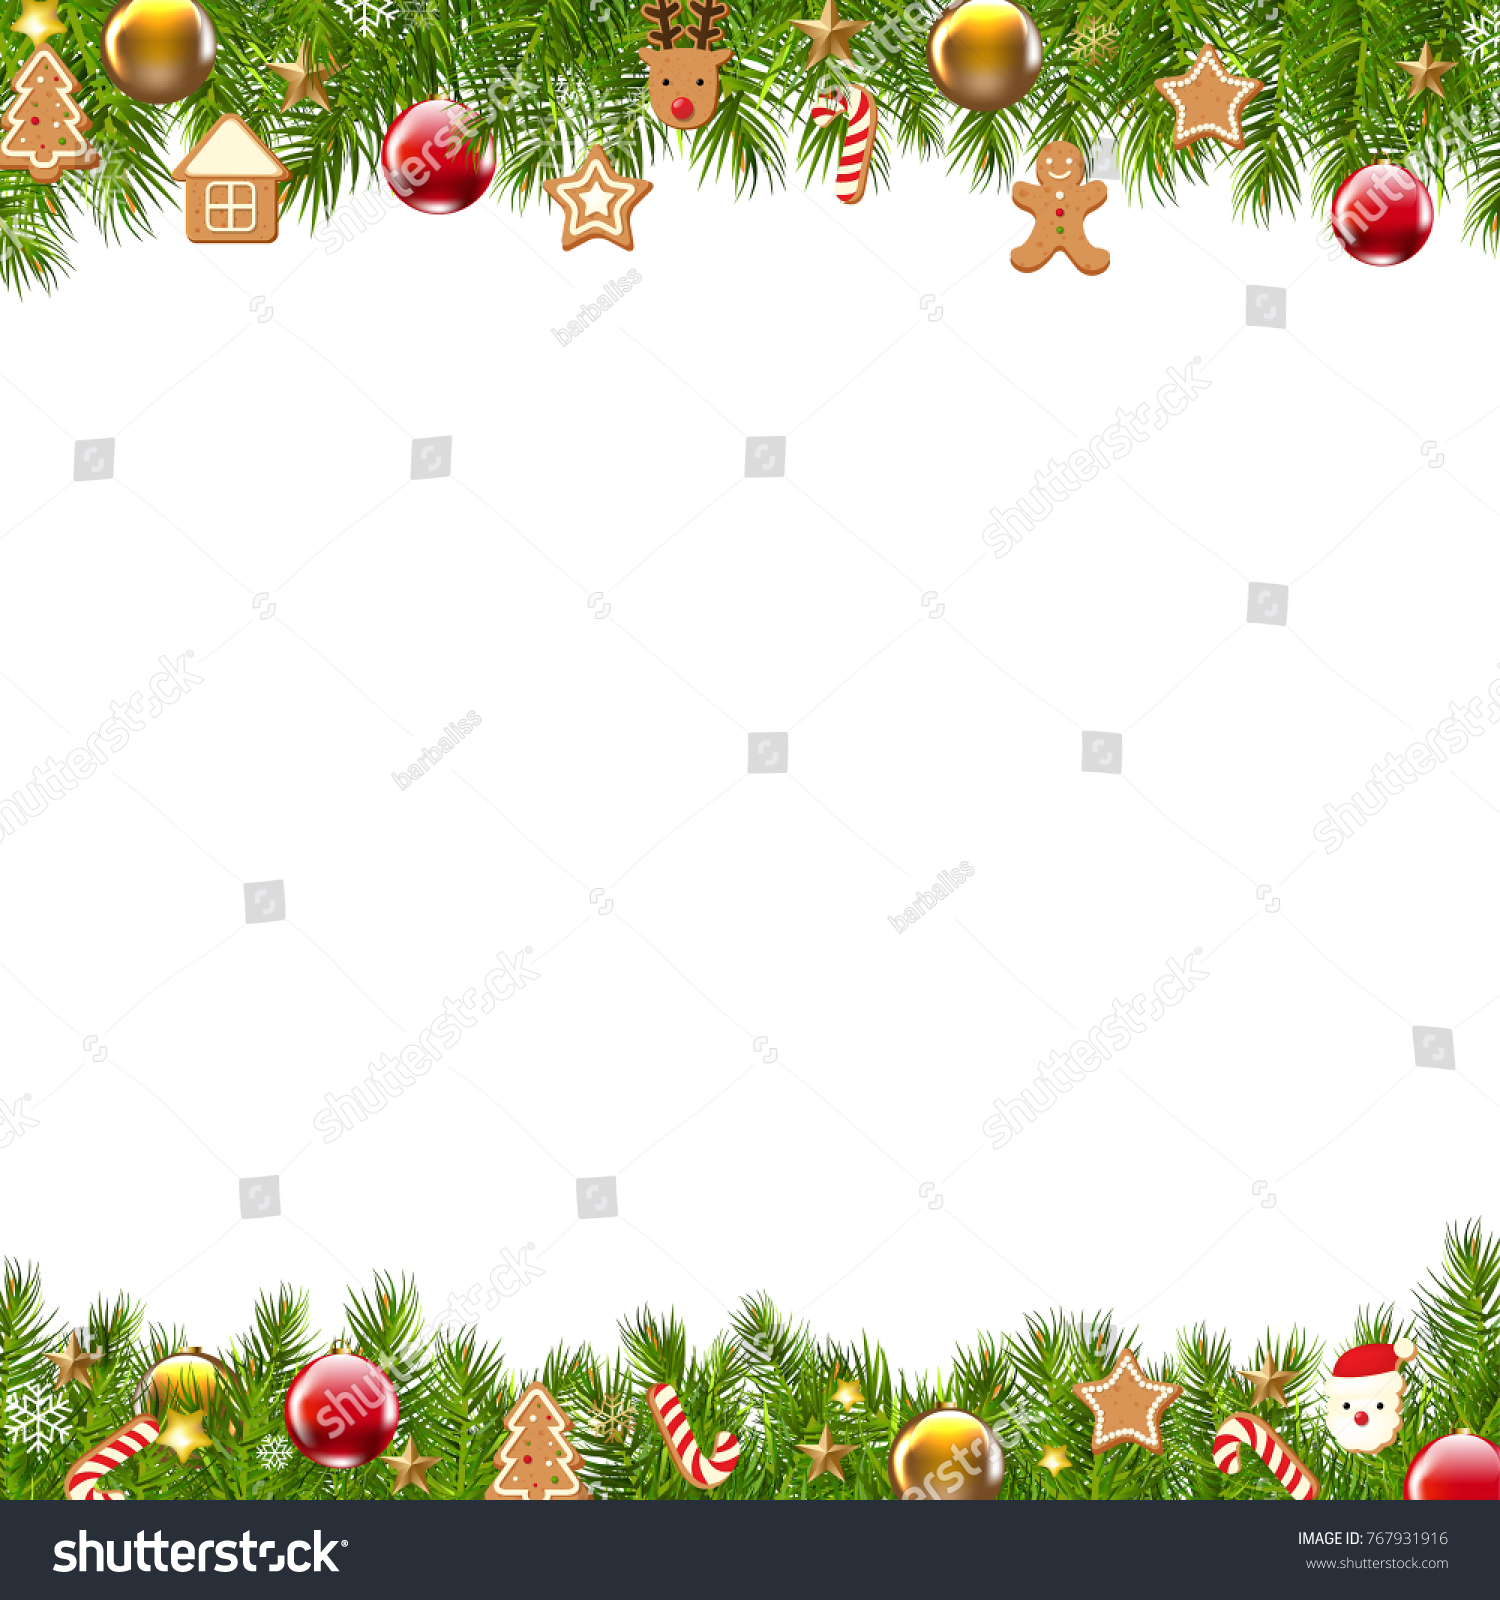 Christmas Border Fir Tree With Gradient Mesh, Vector Illustration #767931916